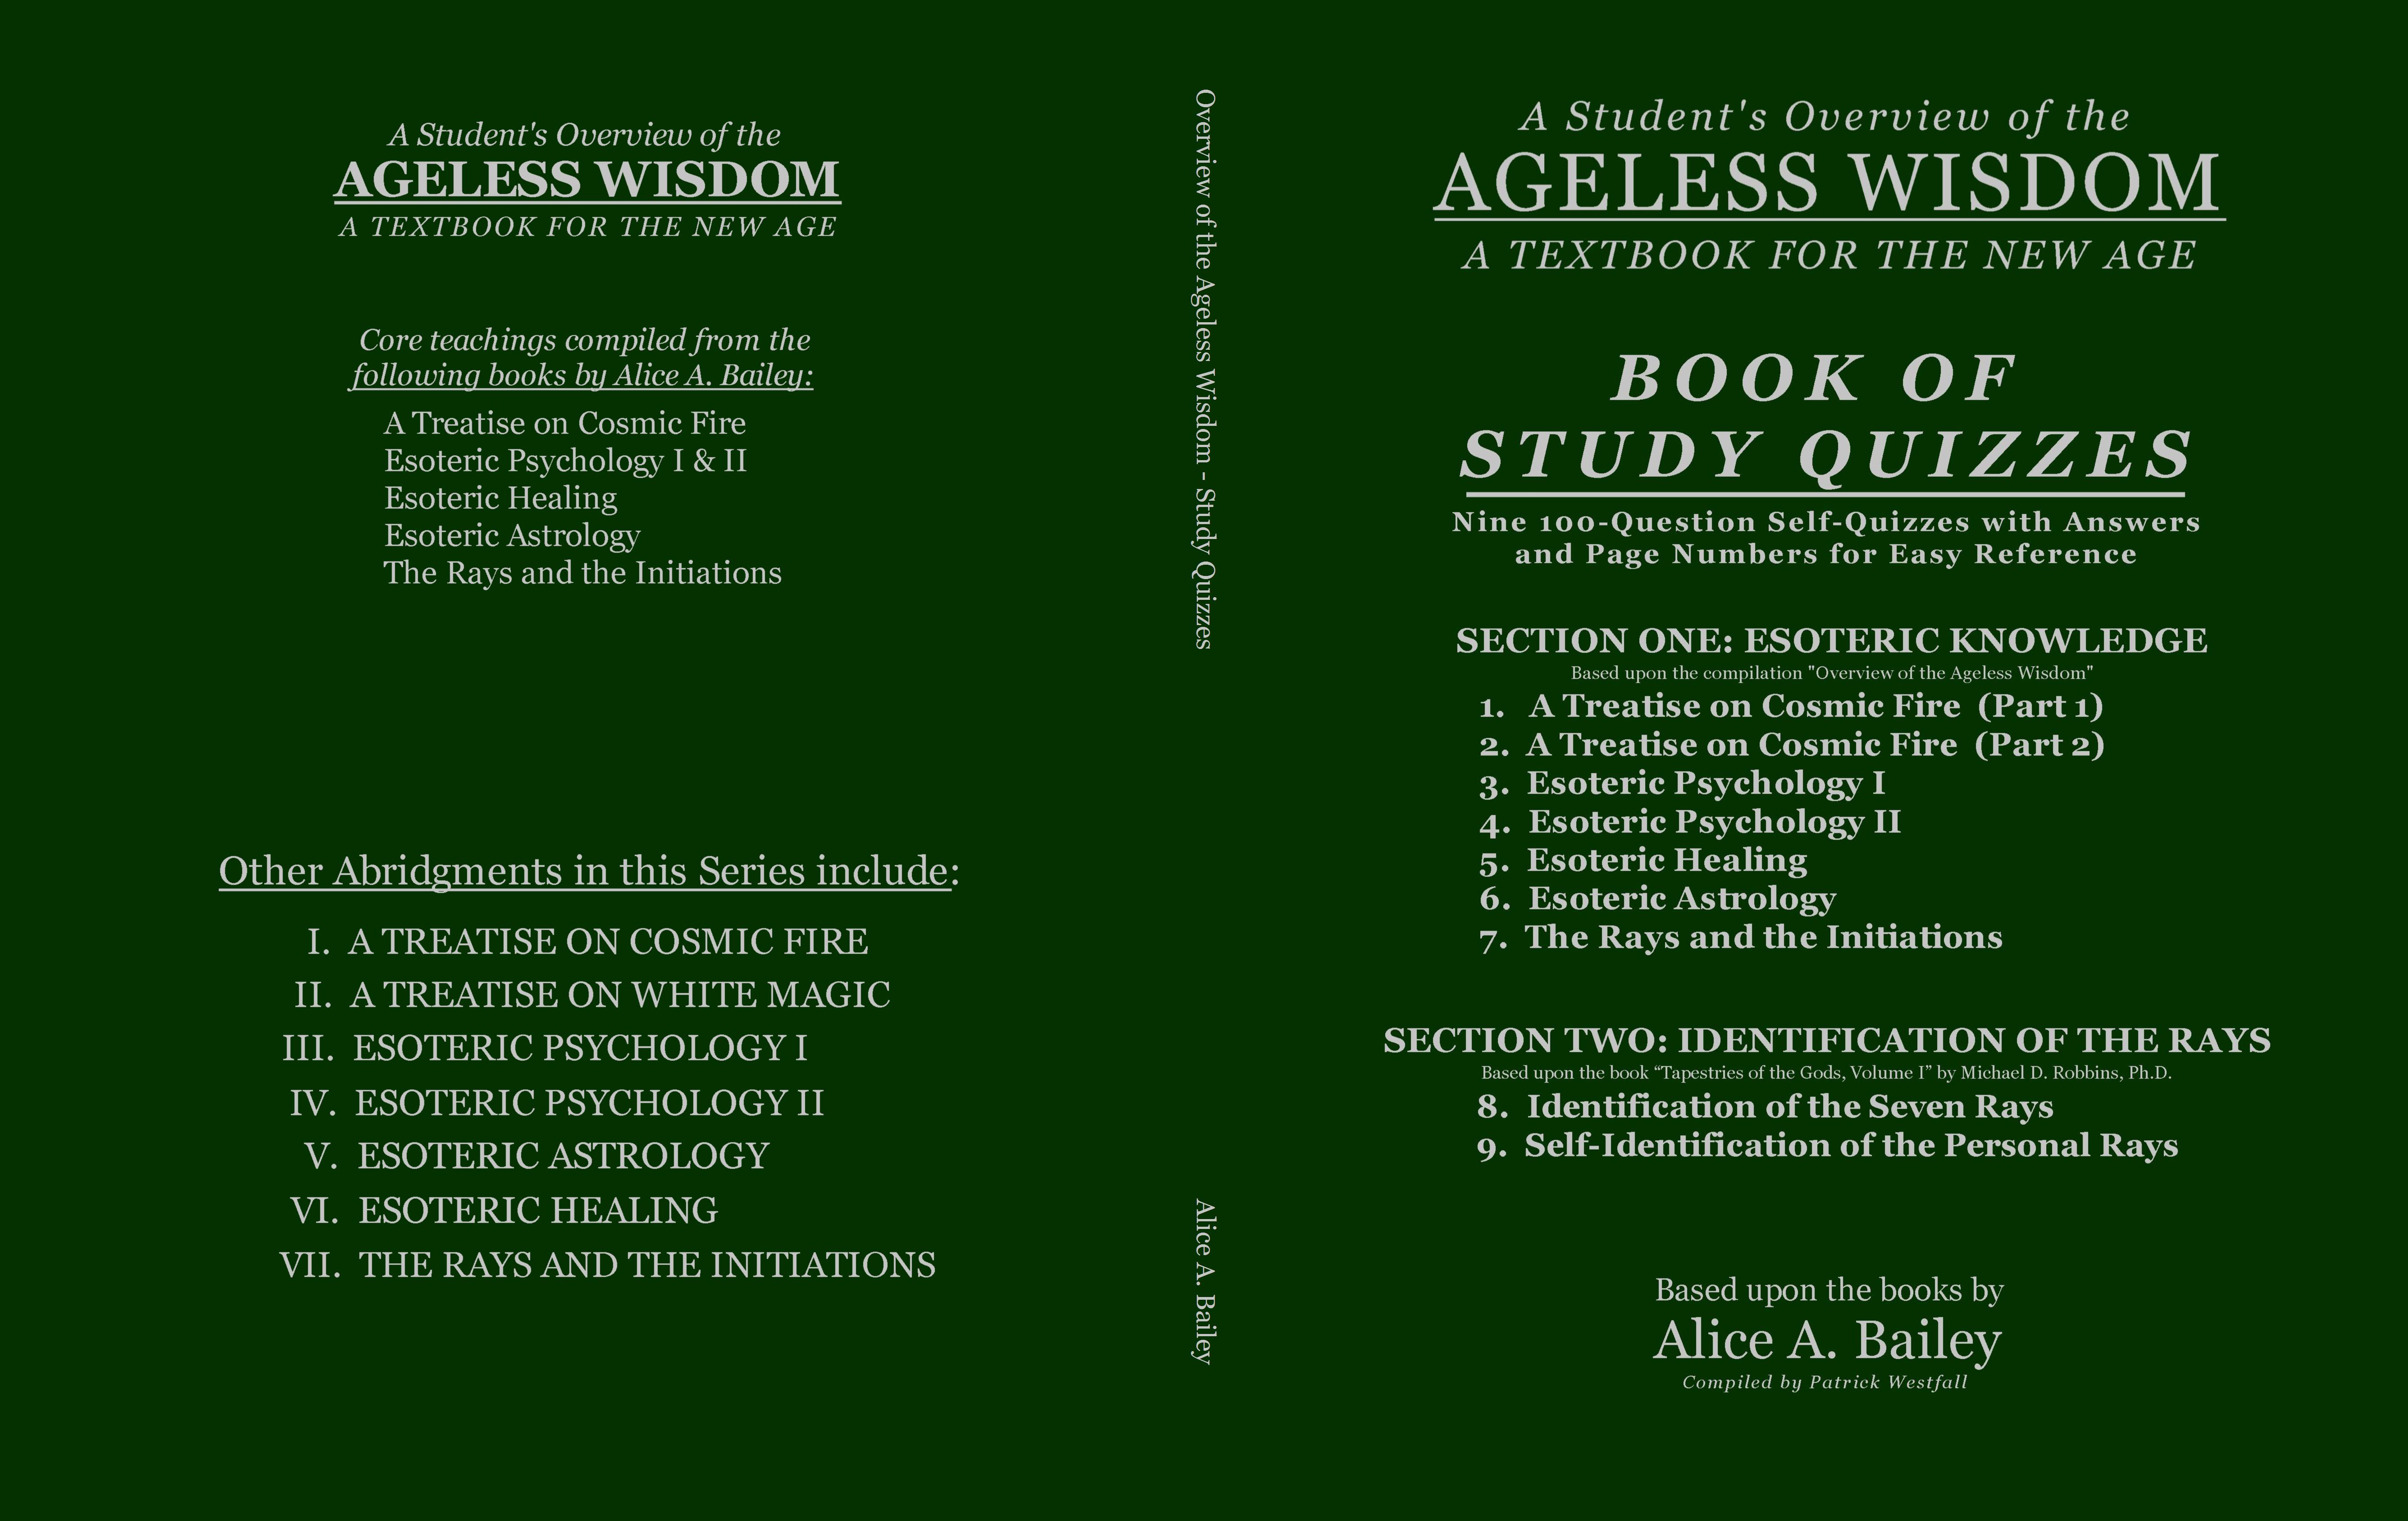 Overview of the Ageless Wisdom: Study Quizzes cover image